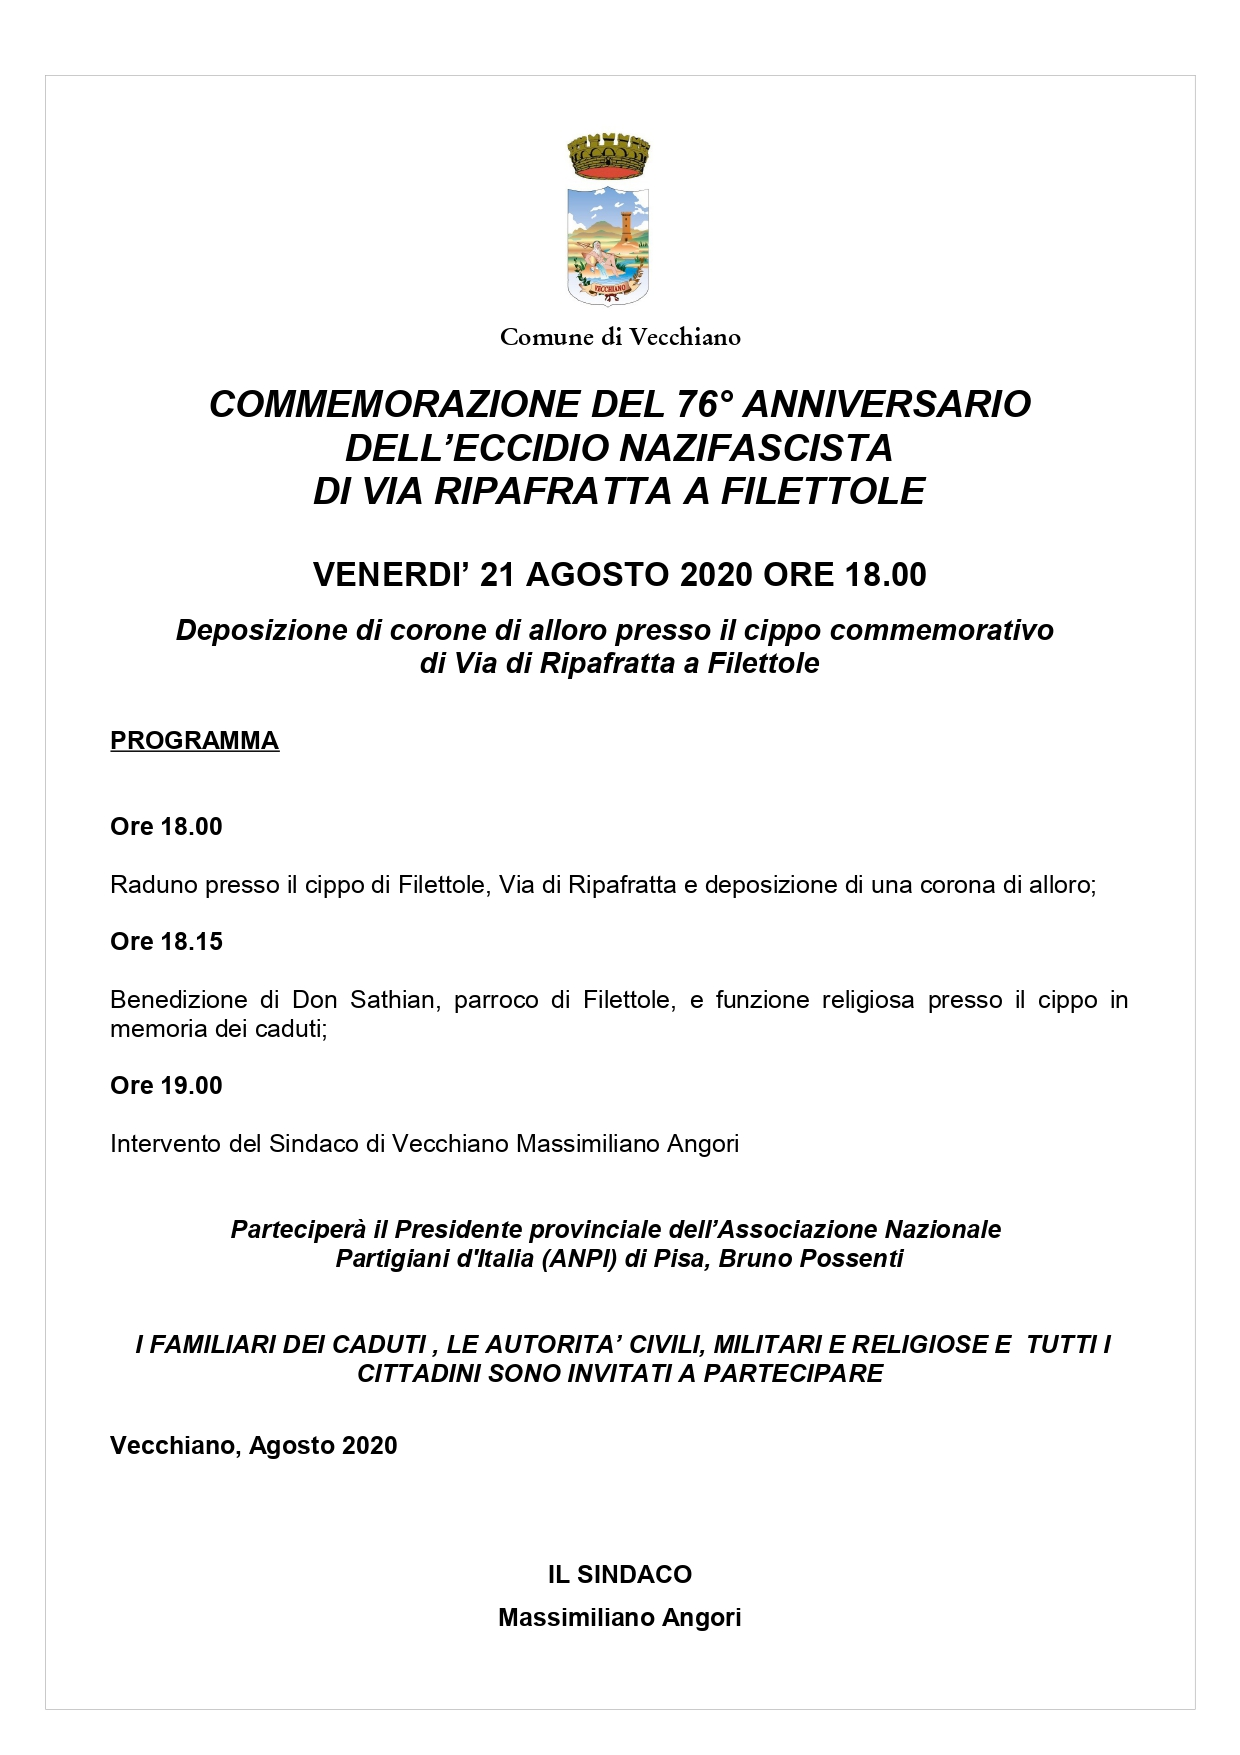 PROGRAMMA eccidio filettole 21 page 0001 1